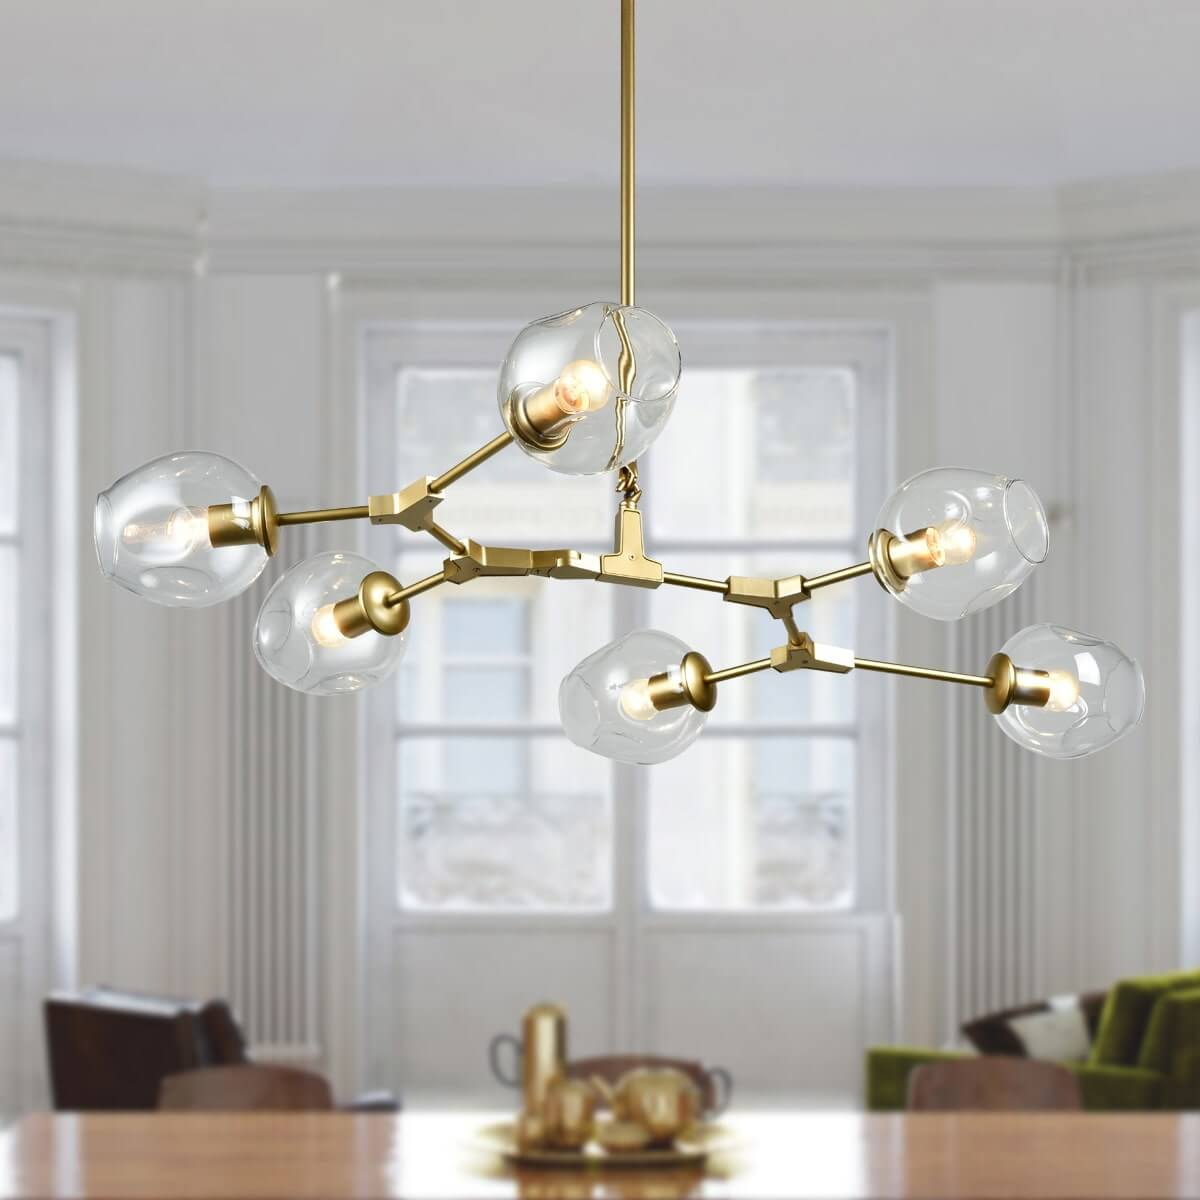 Modern Chandelier Gold Dinging Room Fixture with Clear Glass – 6 Light